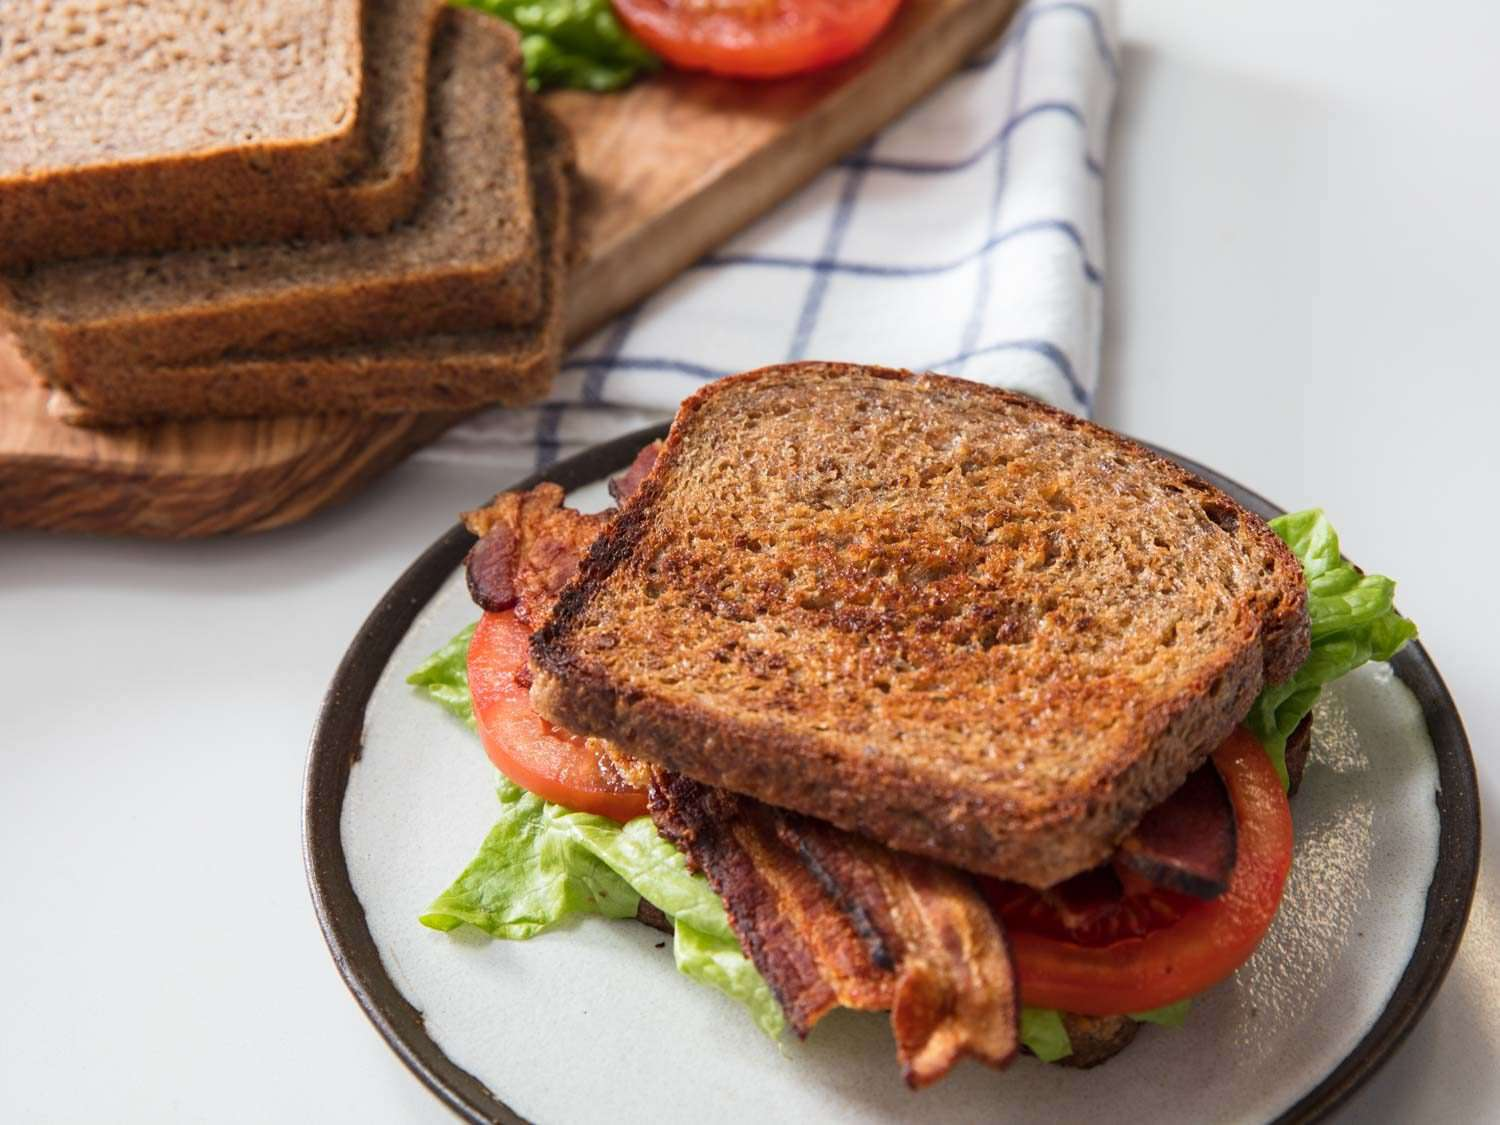 whole grain BLT with bread slices